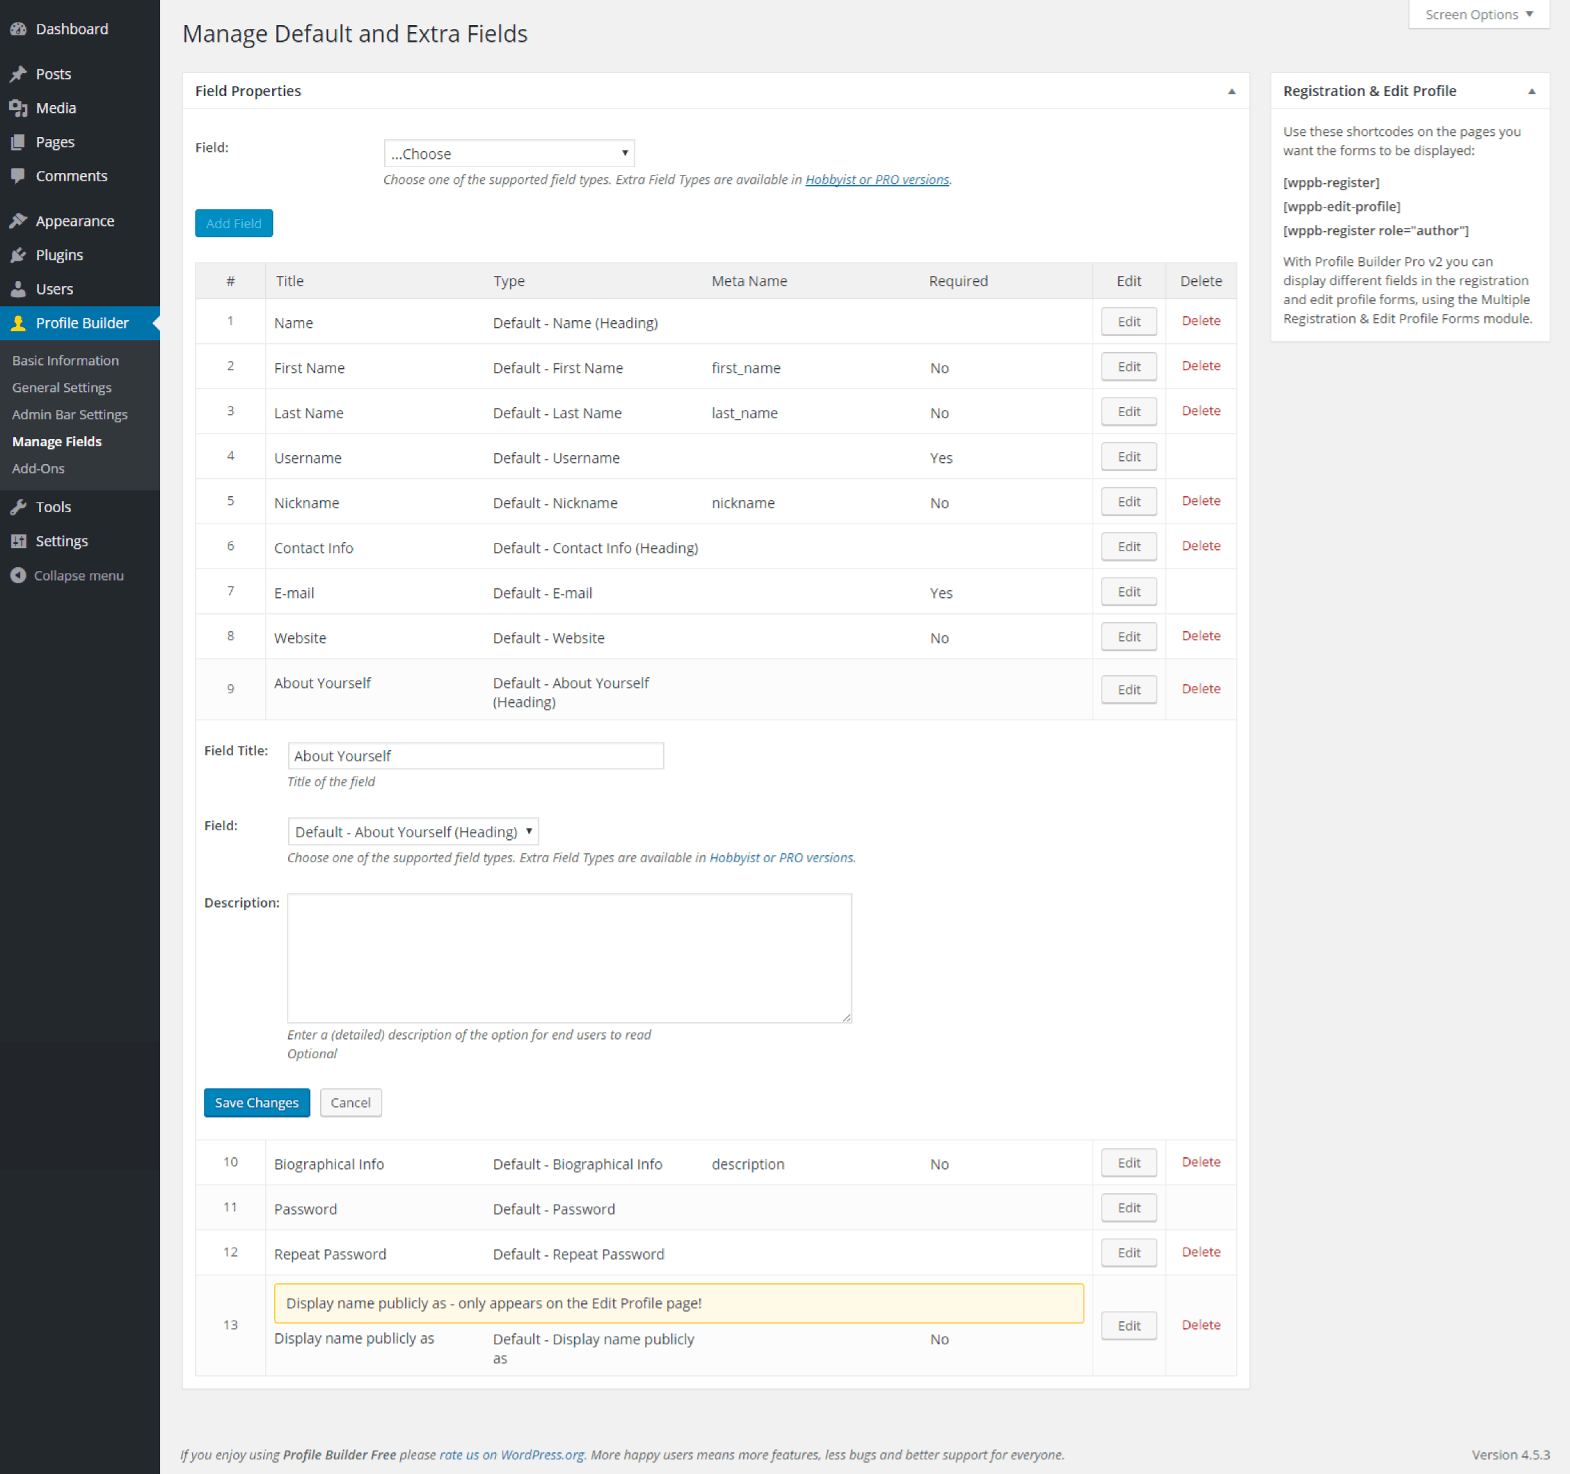 Profile Builder - Default About Yourself (Heading) Field Back End